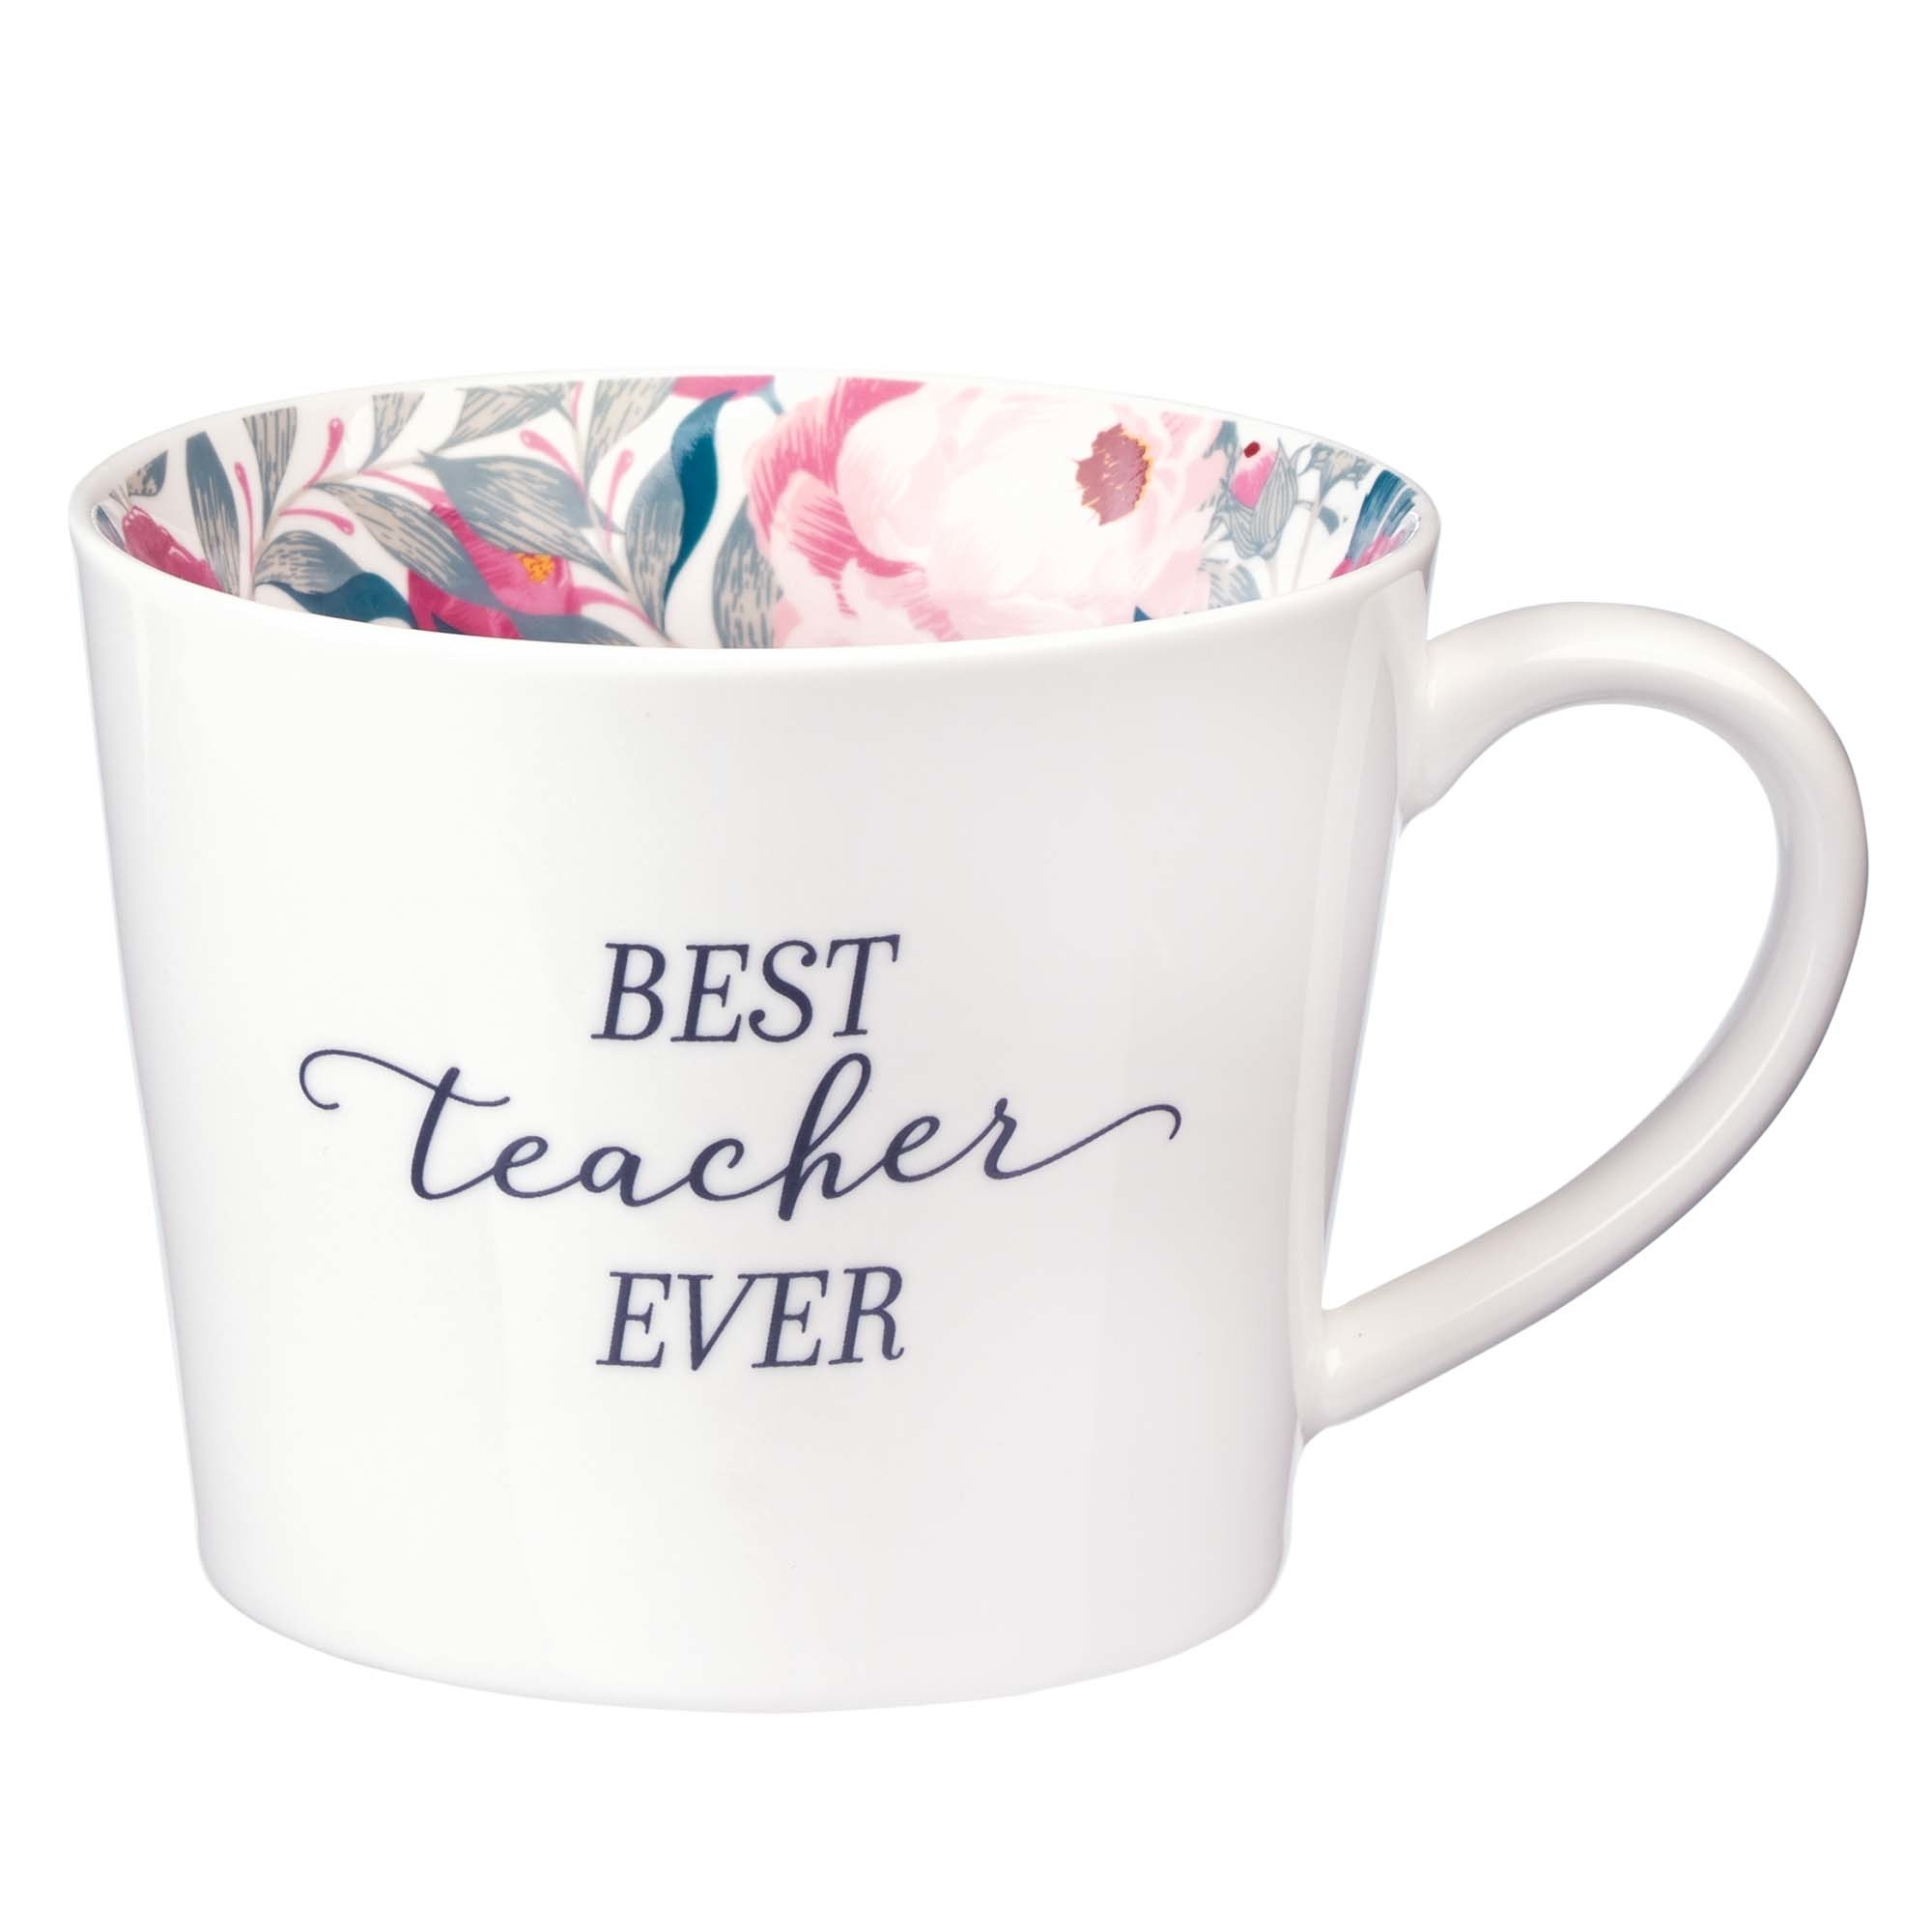 Best Teacher Ever Ceramic Mug In White With Floral Interior Free Delivery When You Spend Pound 10 At Eden Co Uk